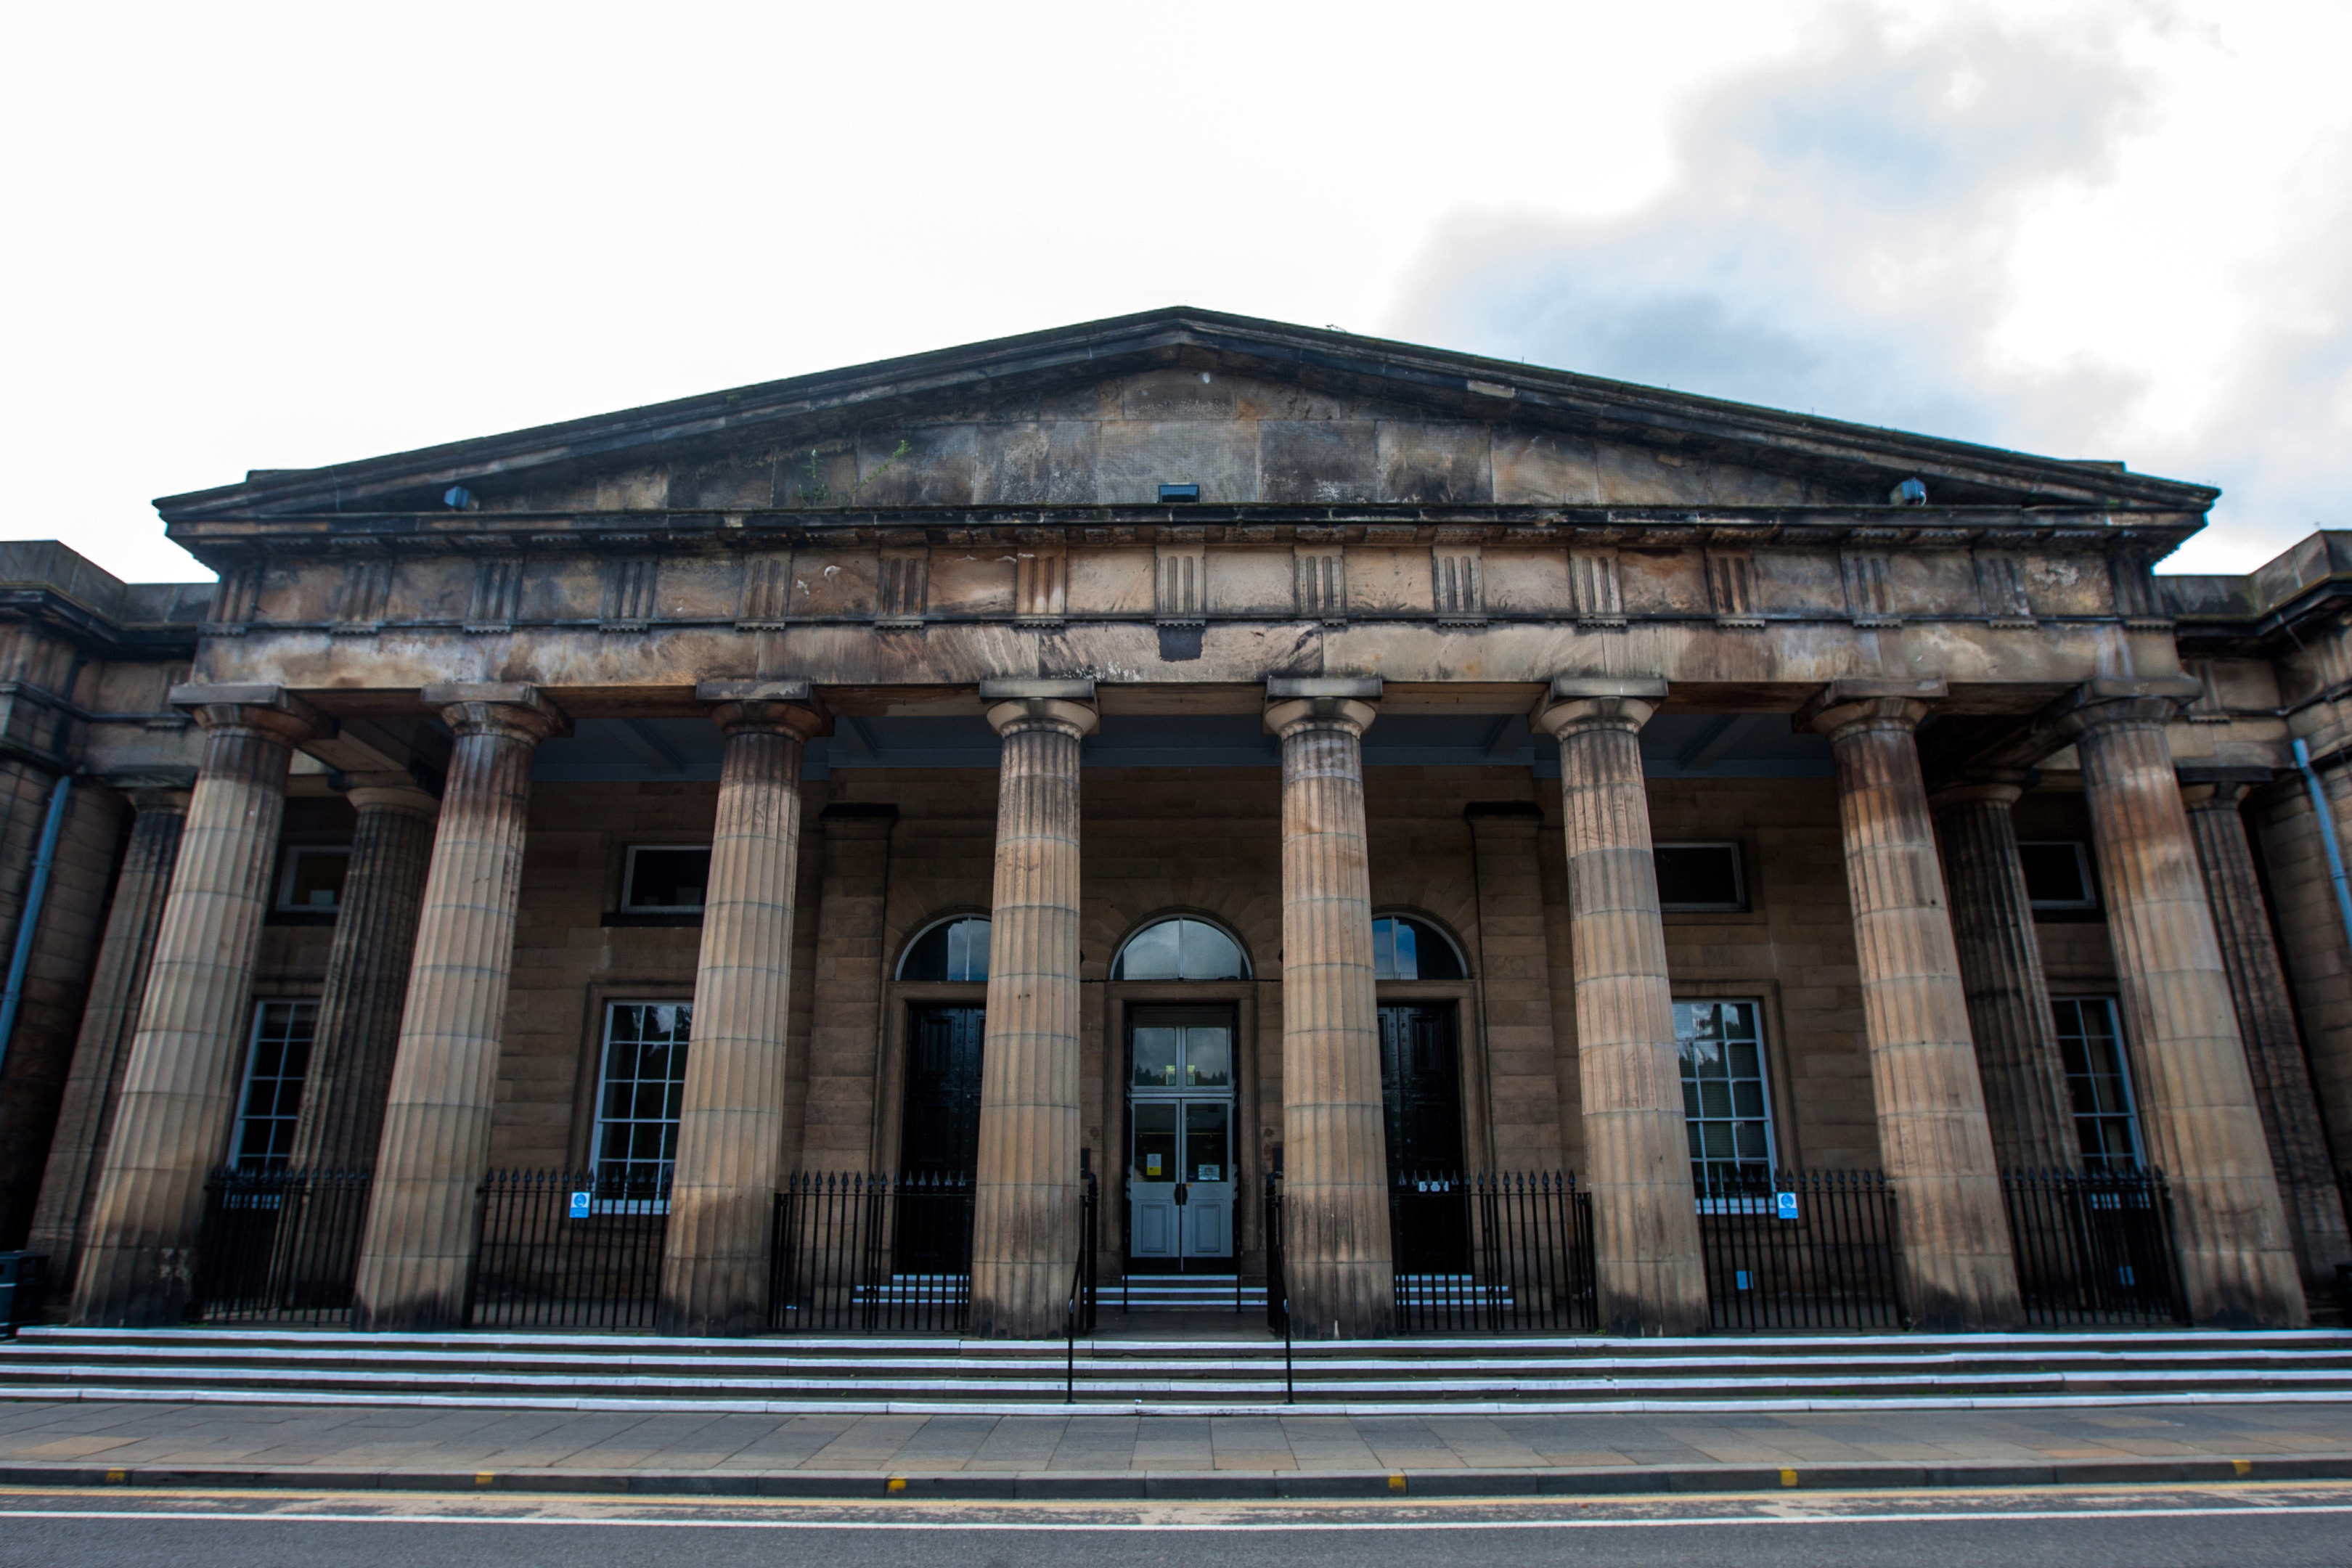 Feuding partners in crime Thomas Cummings and John Strickland were jailed for 12 months and 55 weeks respectively at Perth Sheriff Court after admitting to a bungled housebreaking.